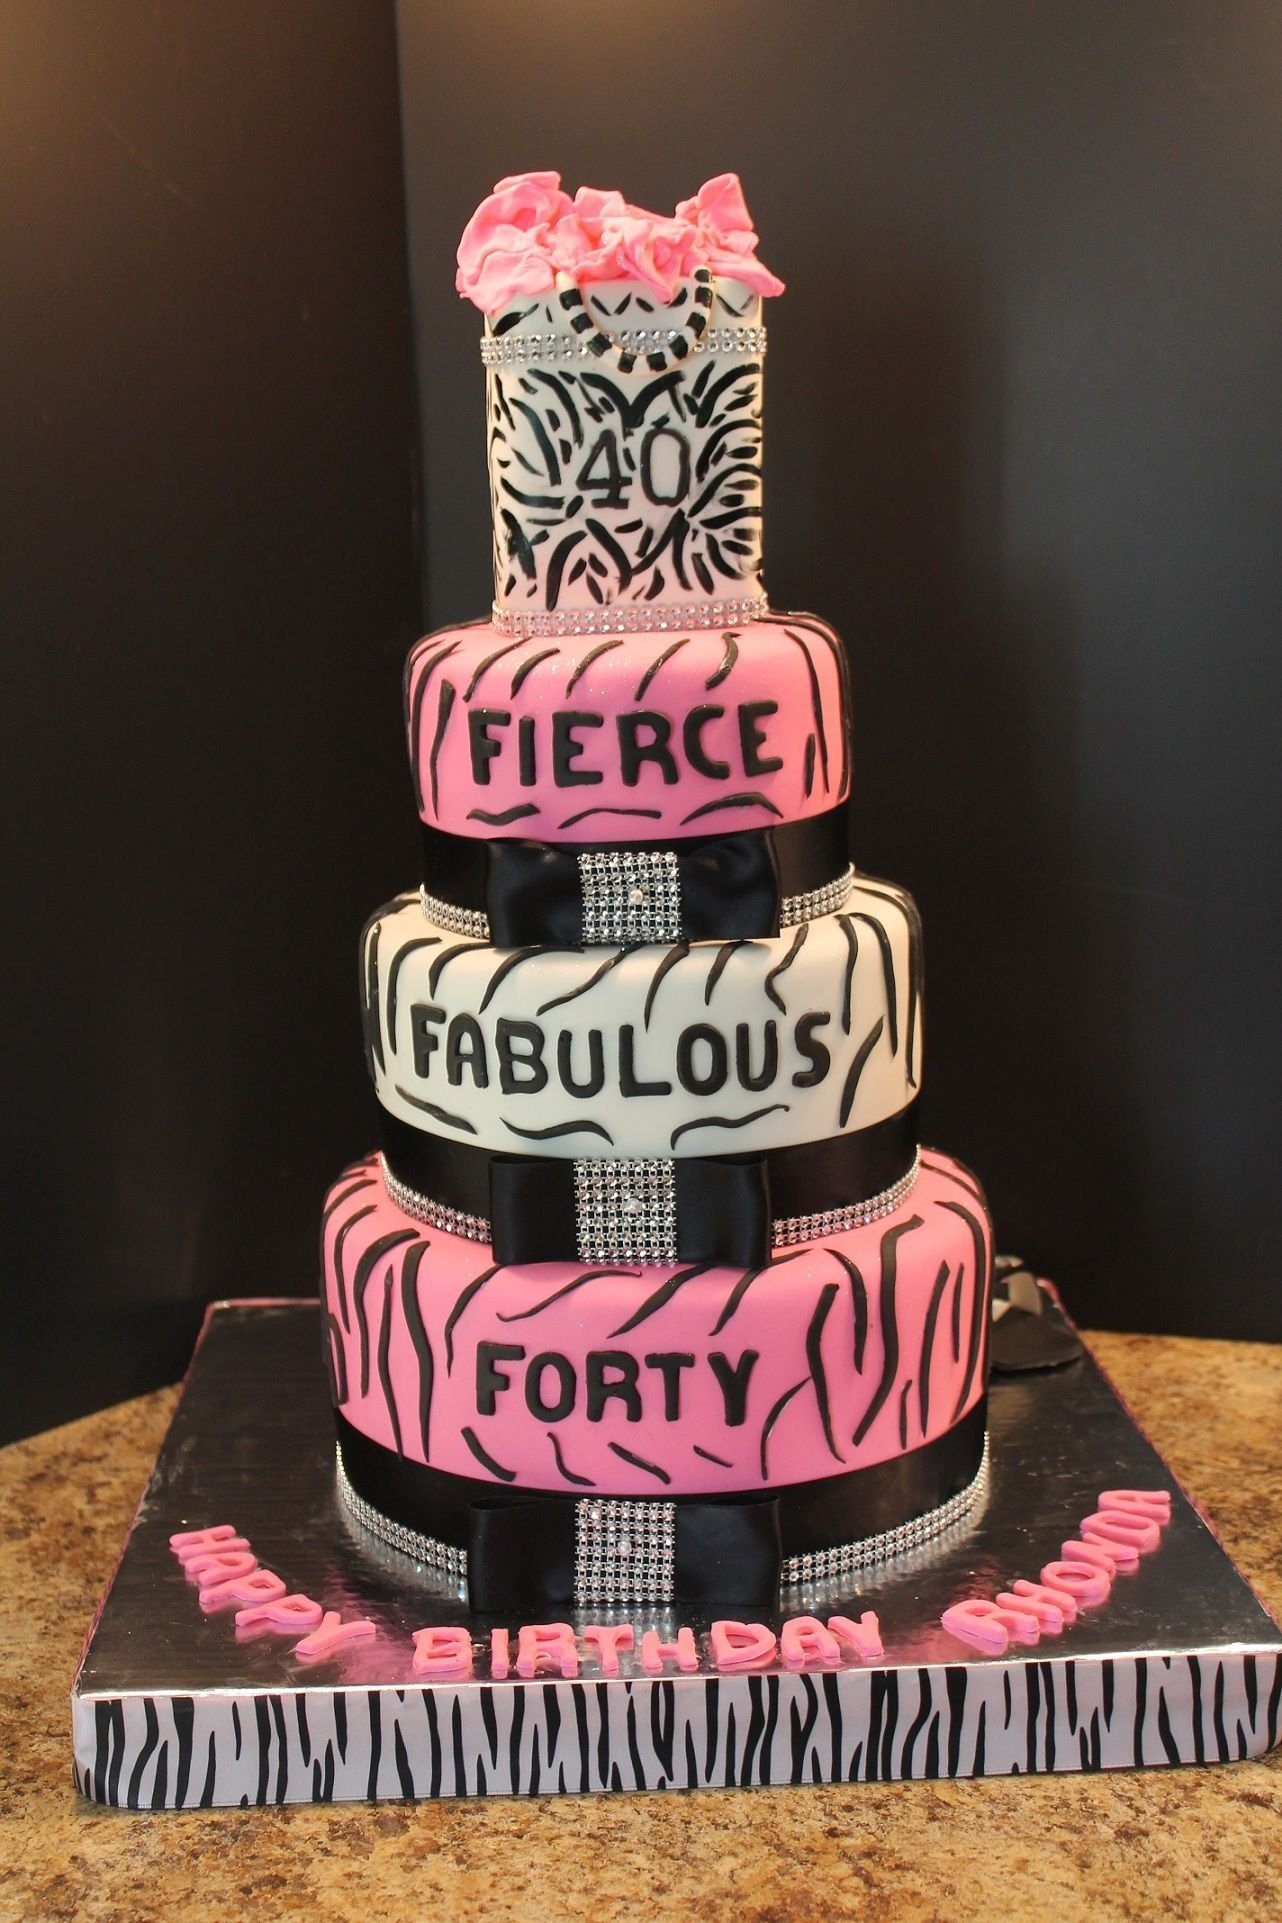 10 Lovely Ideas For 40Th Birthday Party Female 40thbirthdaycake 40th birthday cake birthday cakes 40 50 3 2020